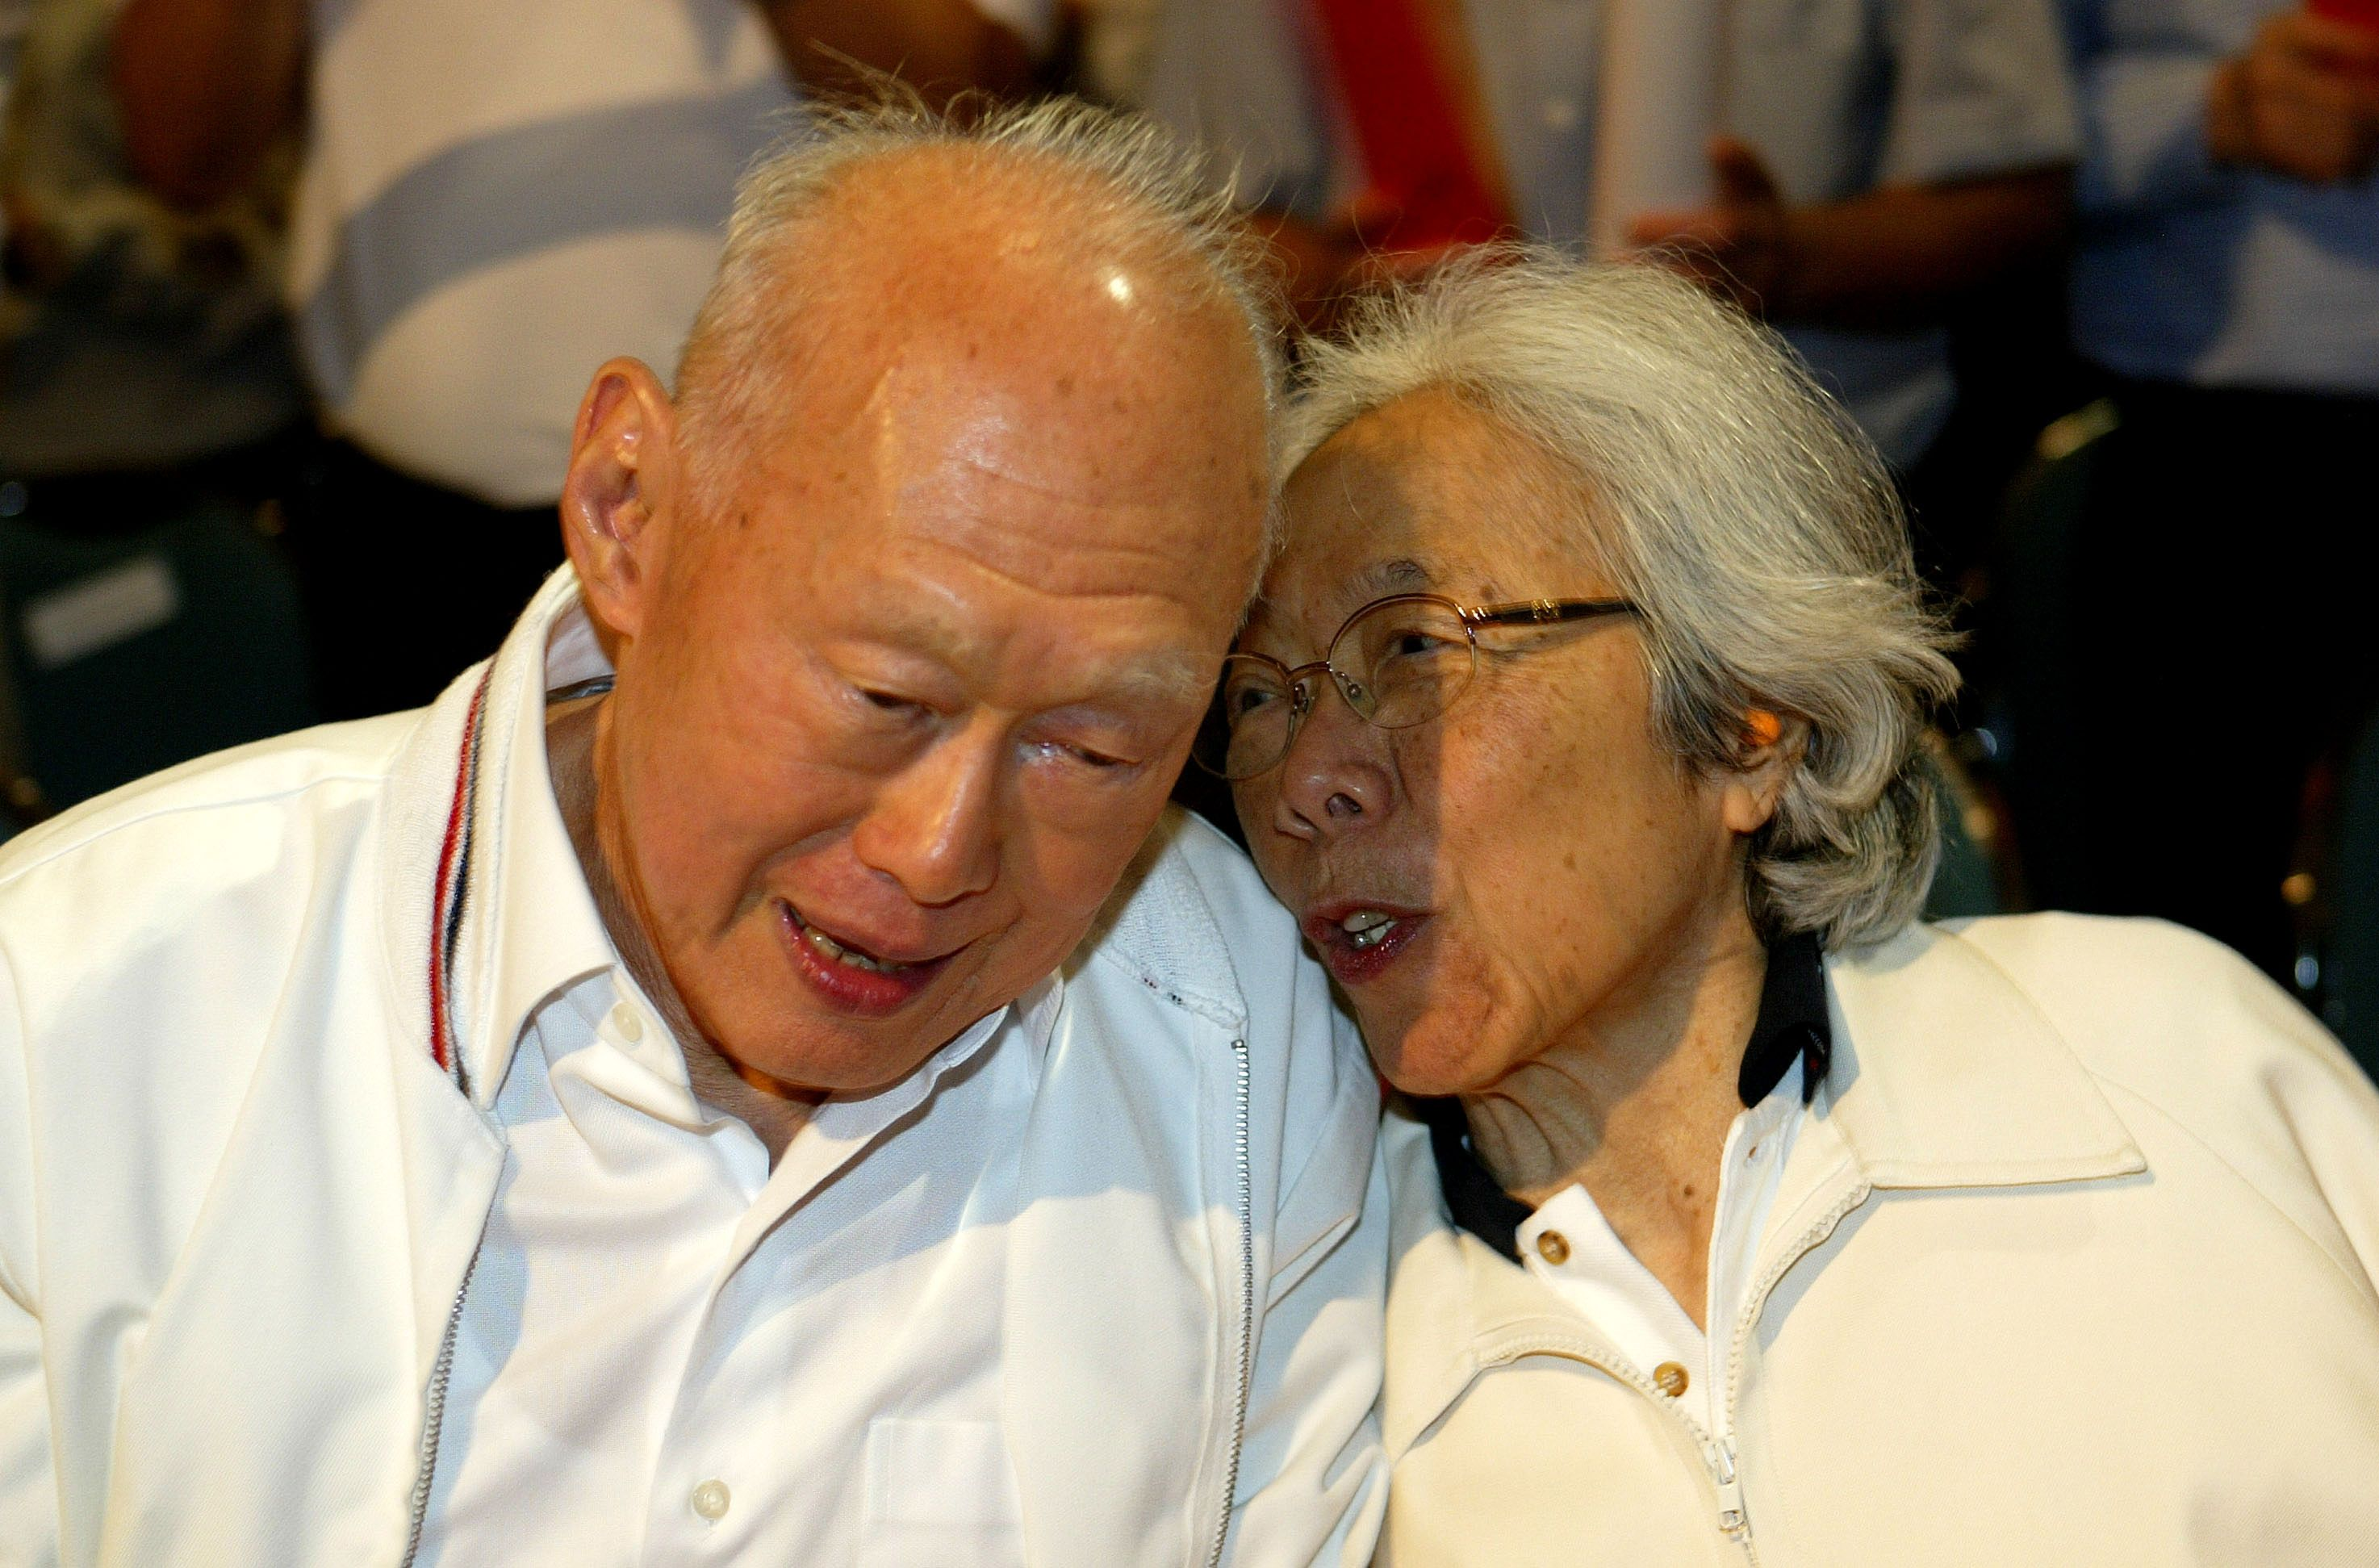 Article expired | Lee Kuan Yew | Pinterest | Lee kuan yew ... - photo#14